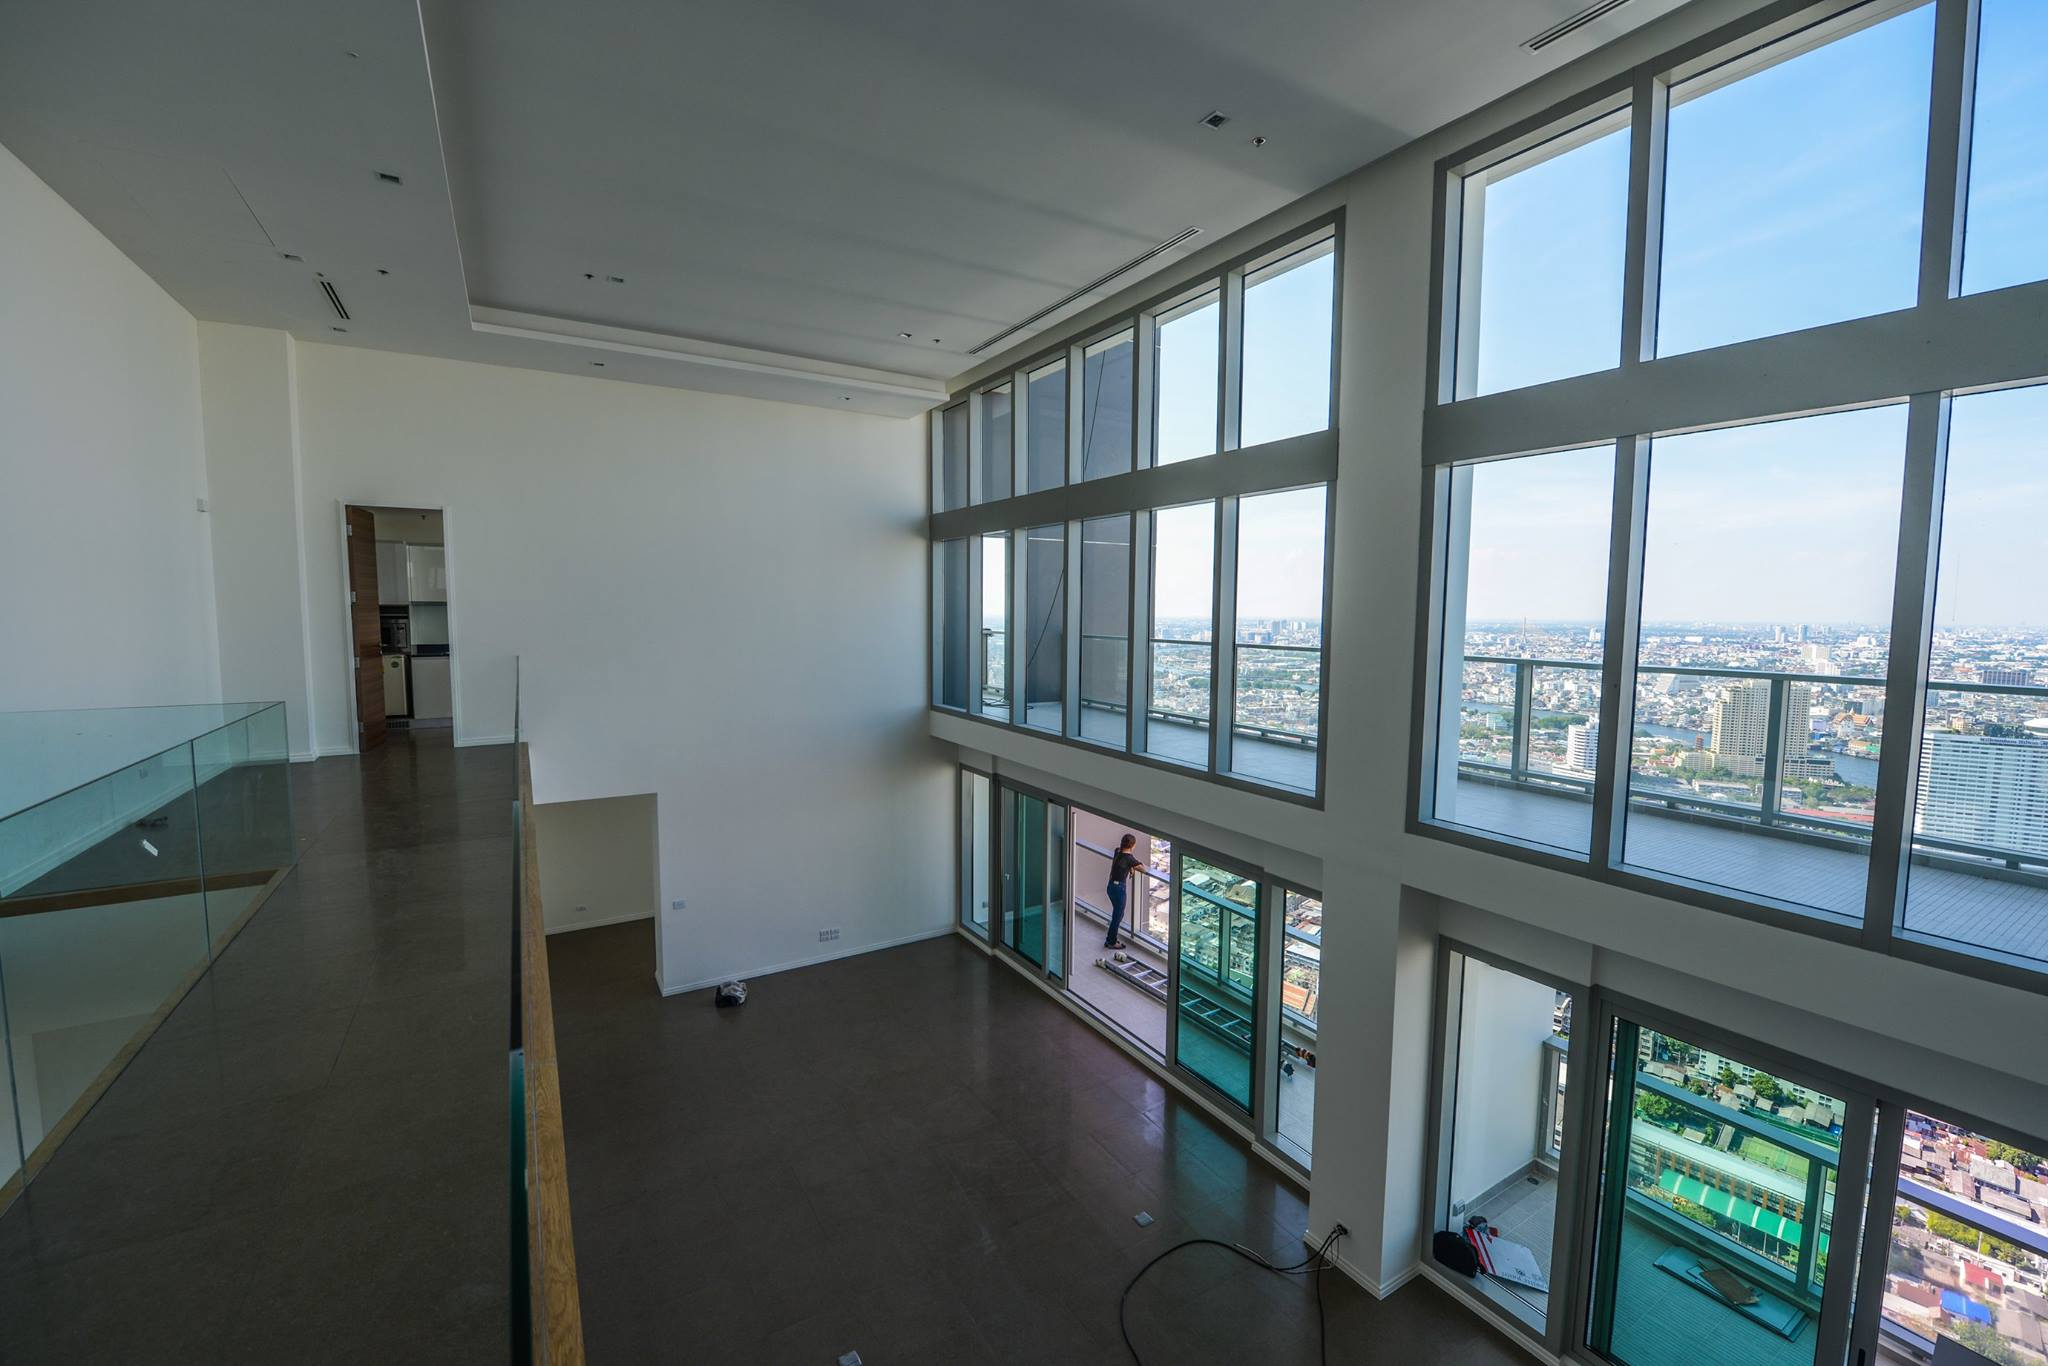 VisionQuest Thailand Property Agency's The River Penthouse 942sq.m spectacular 180 degrees river and city views 28